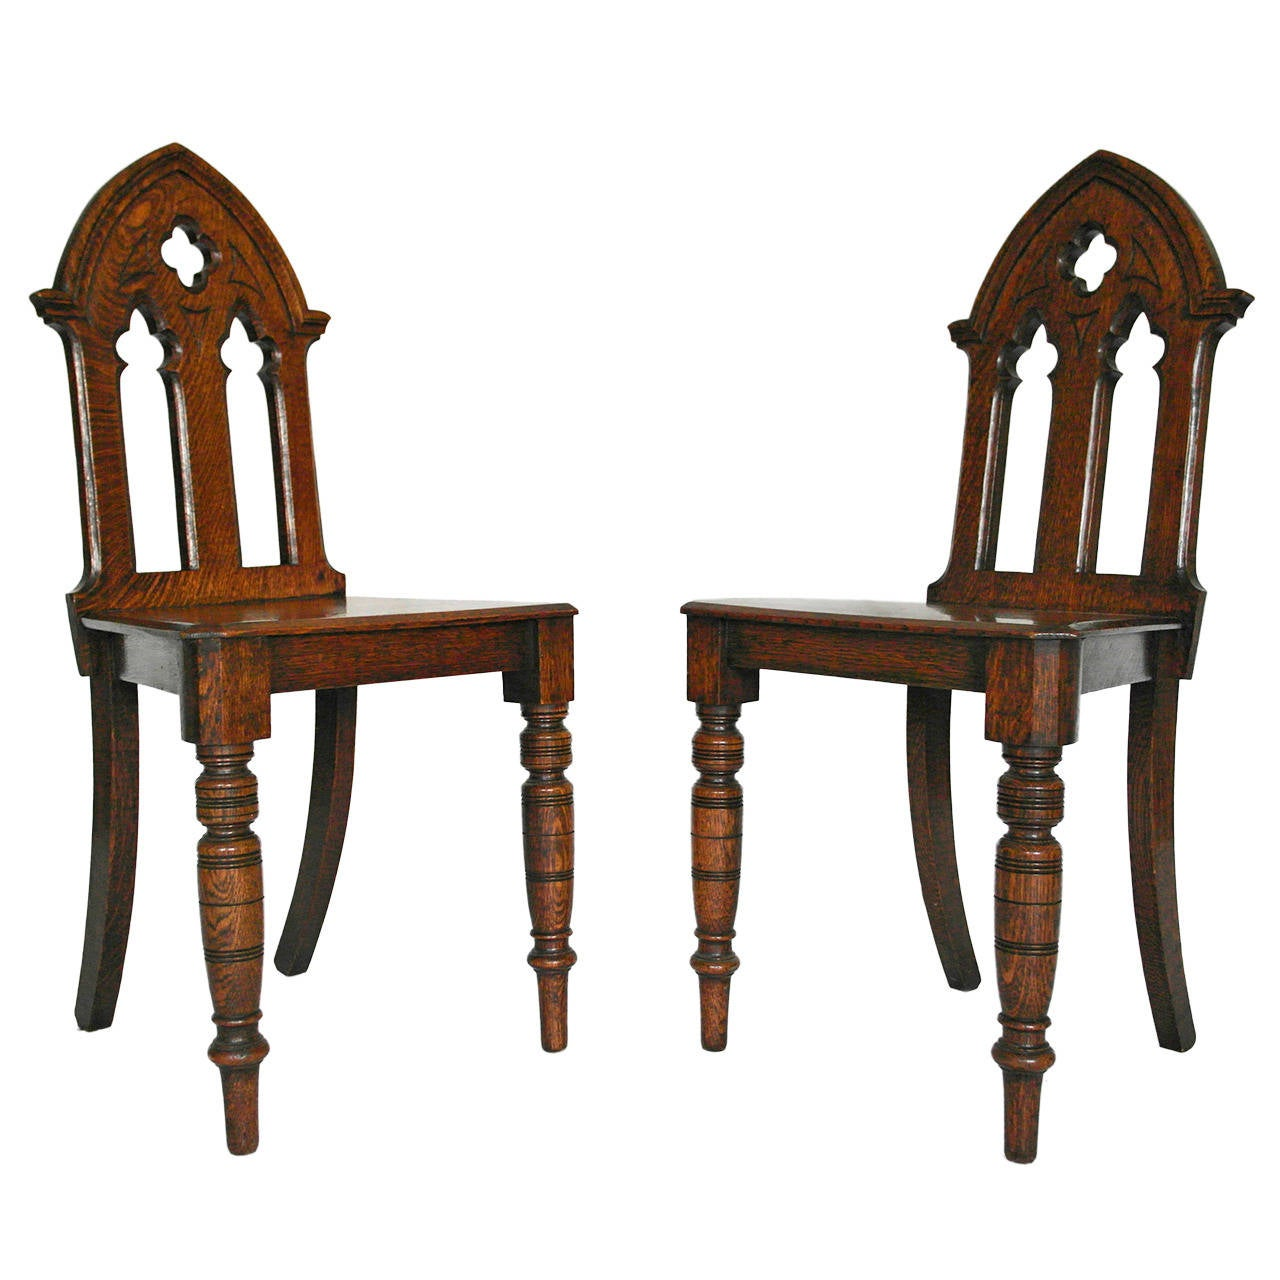 Gothic furniture chair - Pair Of English Victorian Gothic Style Oak Hall Chairs 1